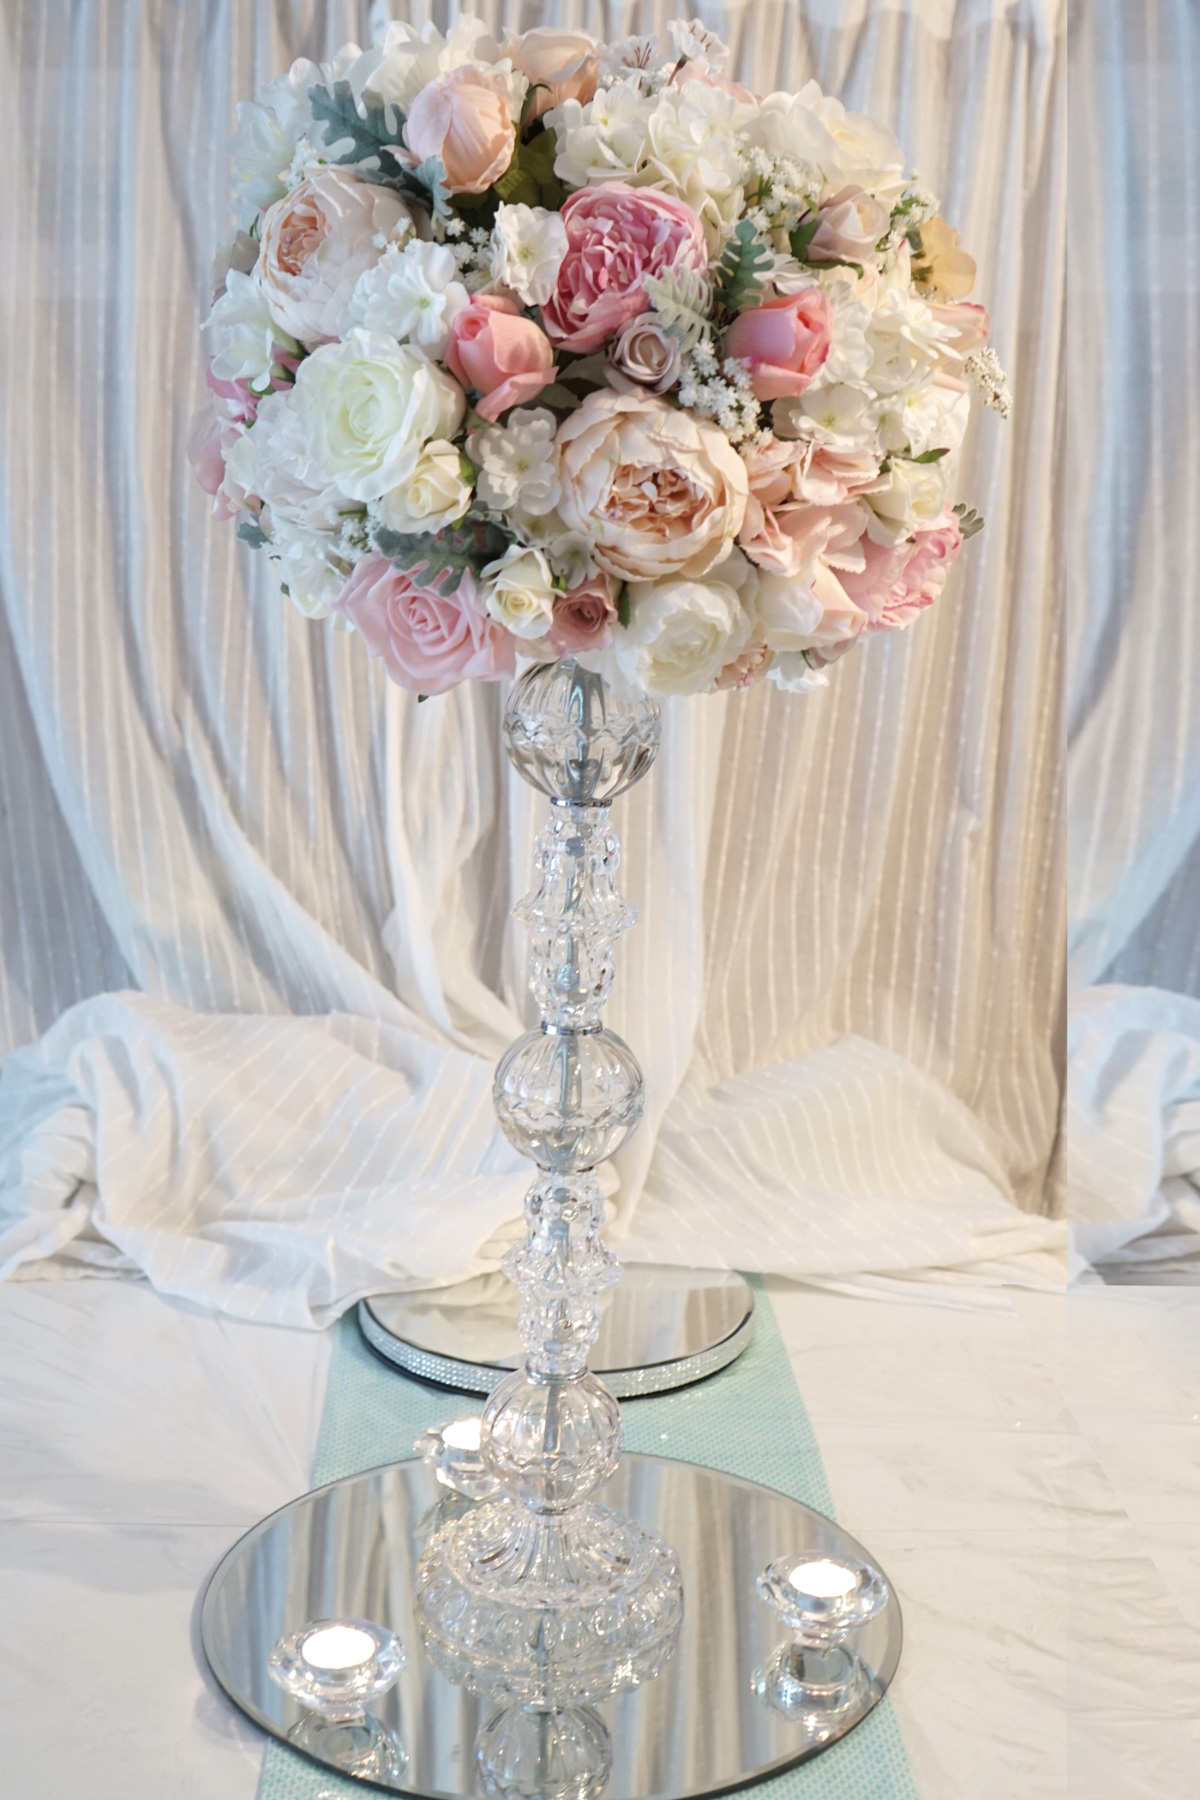 Wedding centerpieces artificial flowers image collections for Wedding dress vase centerpiece